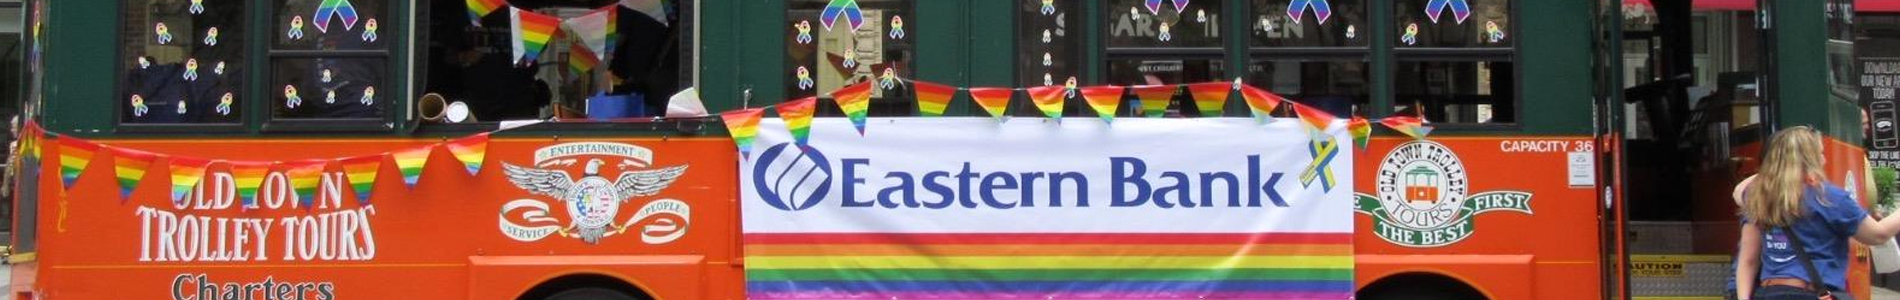 Eastern Bank Gay Pride parade float